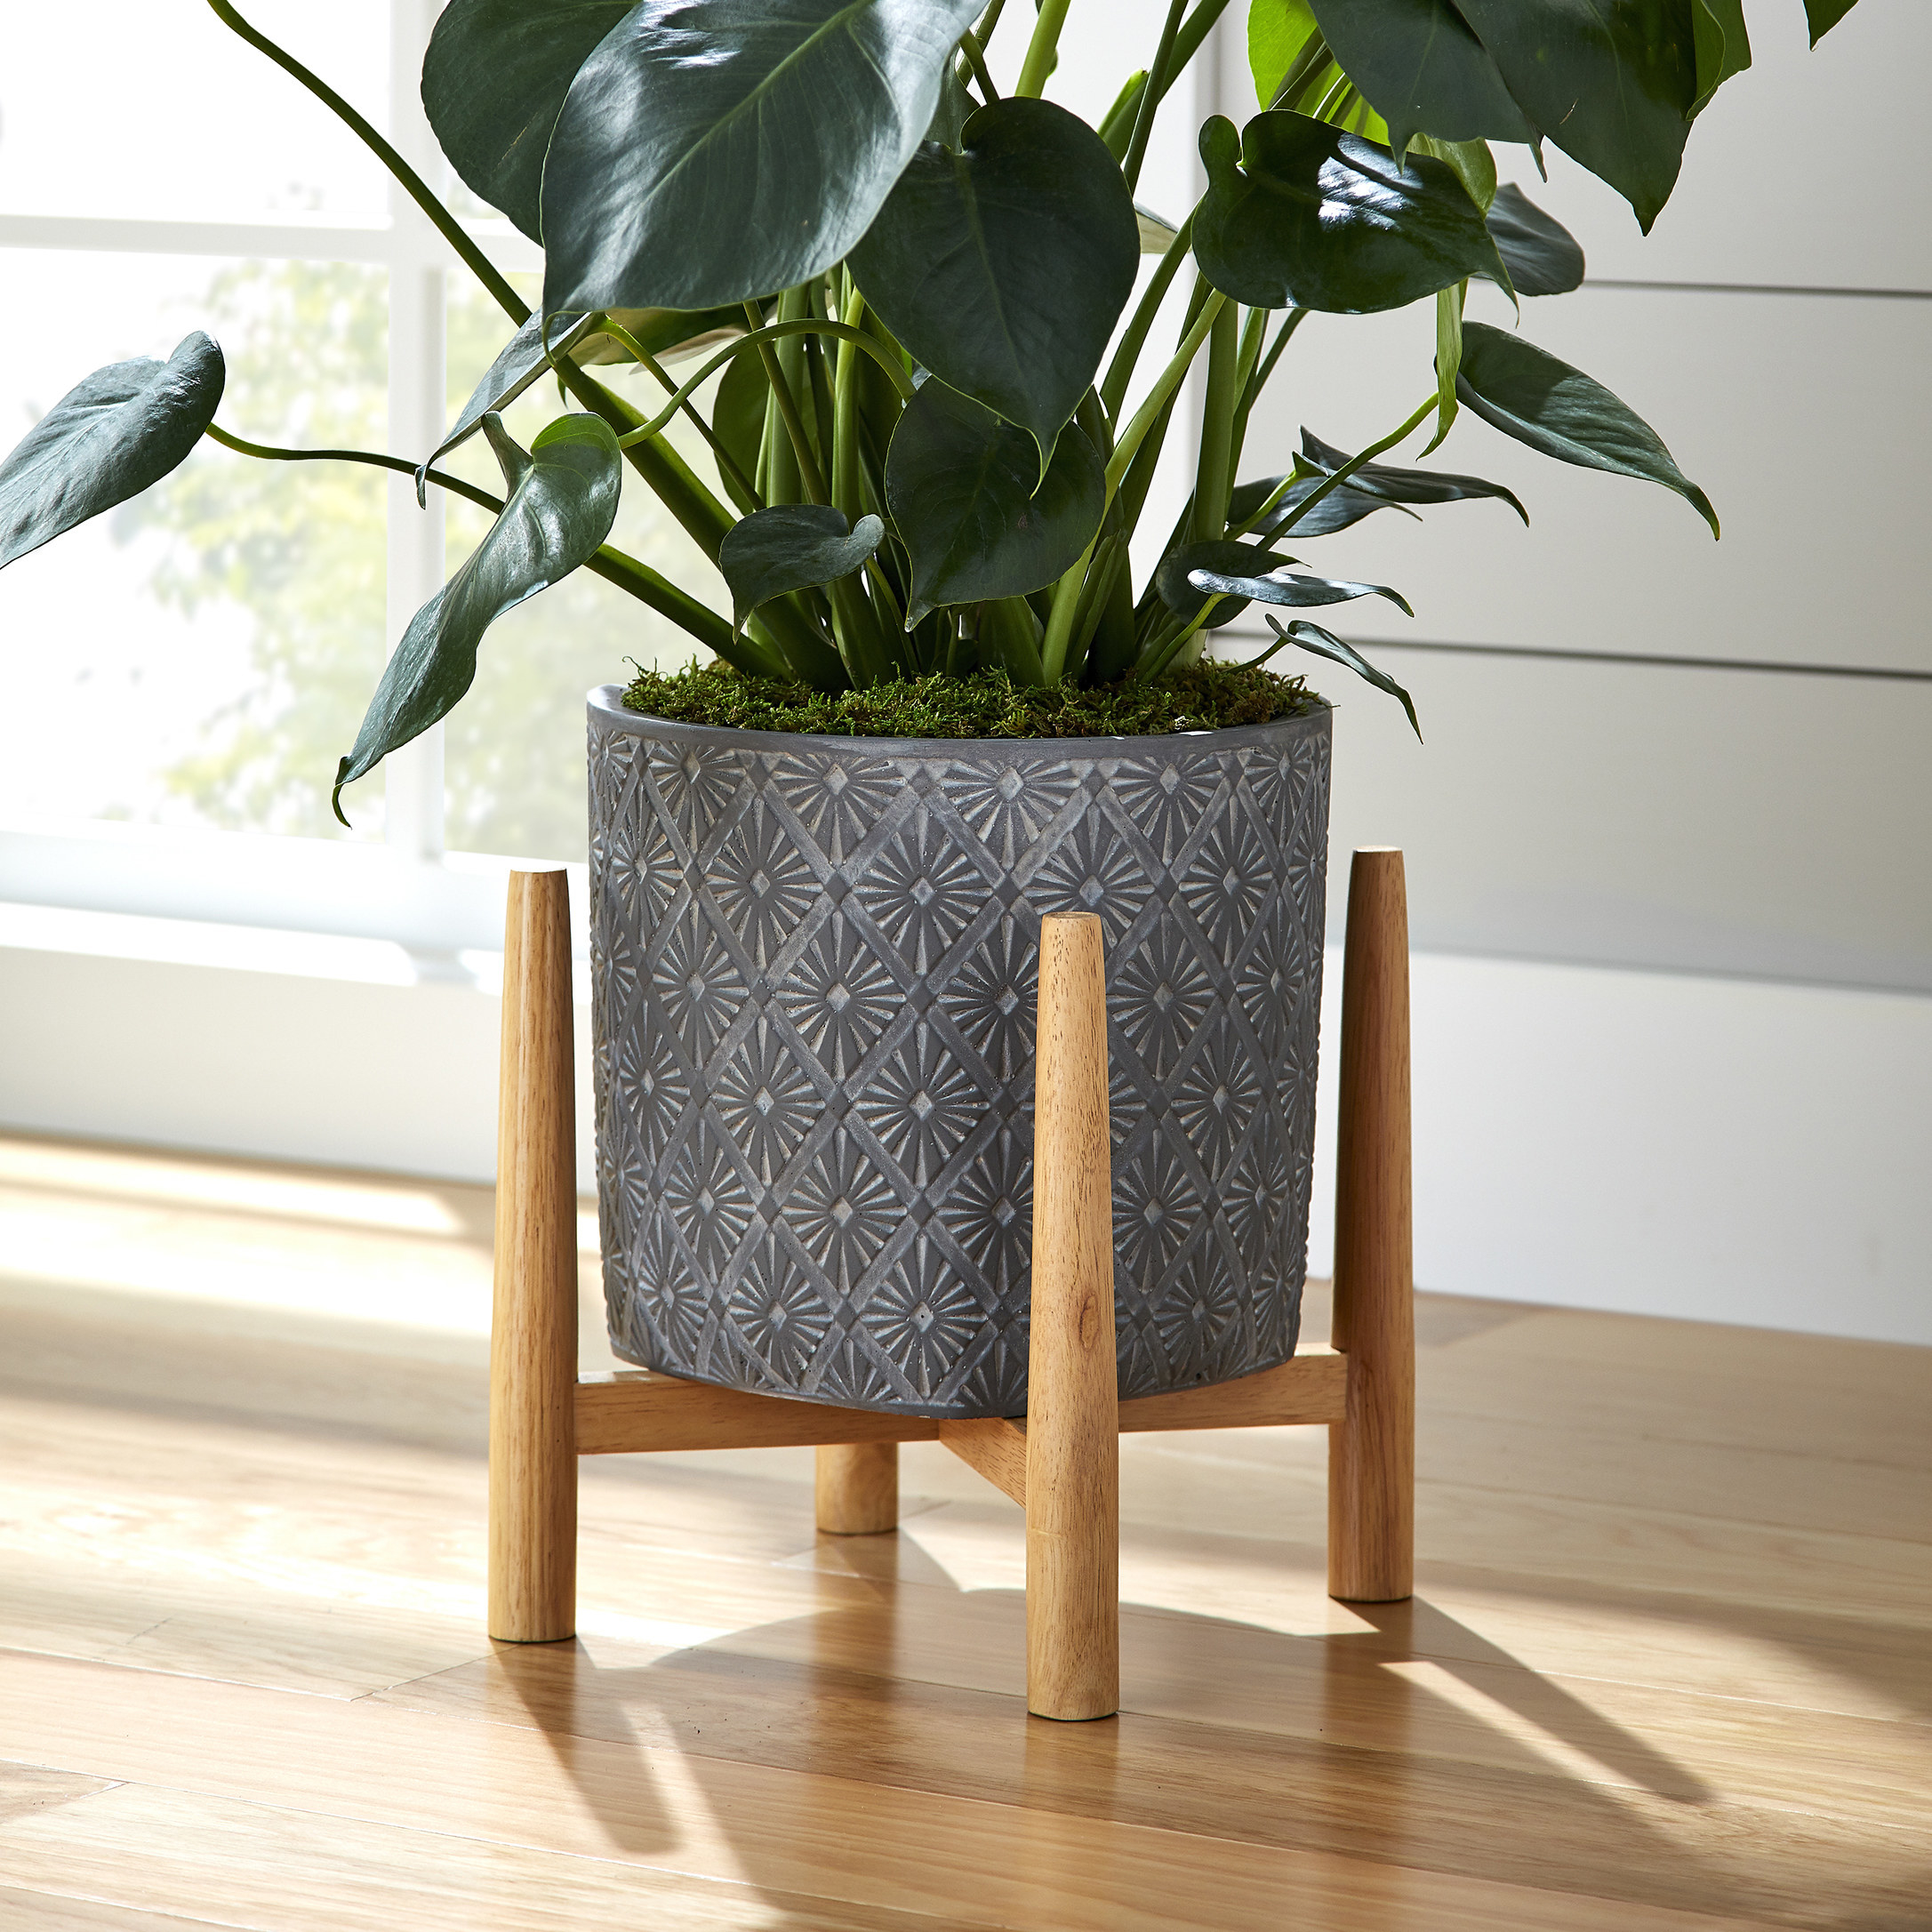 gray pot with geometric design and wooden stand